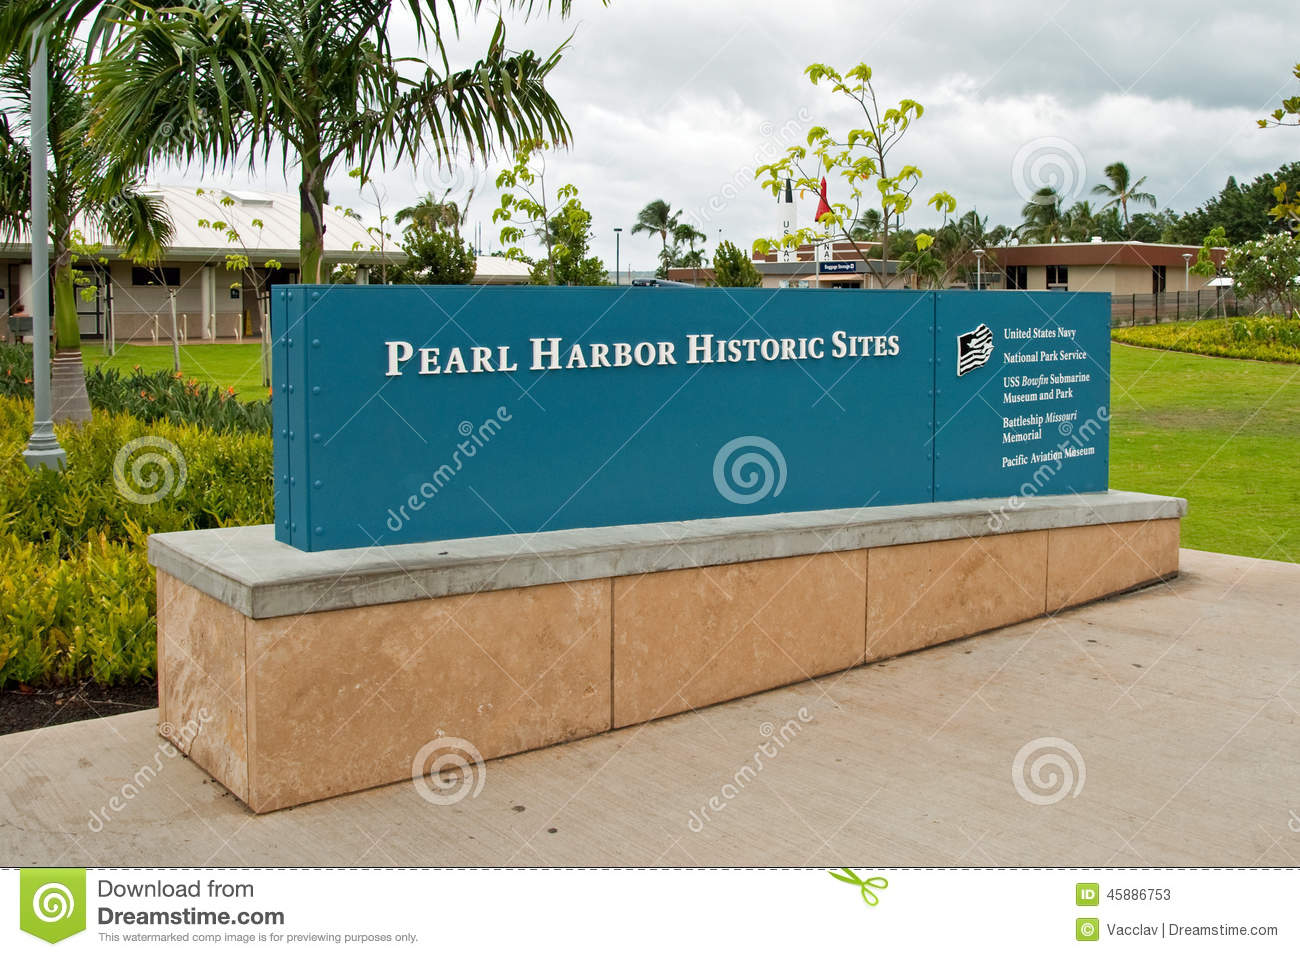 Where is a good website about Pearl Harbor?